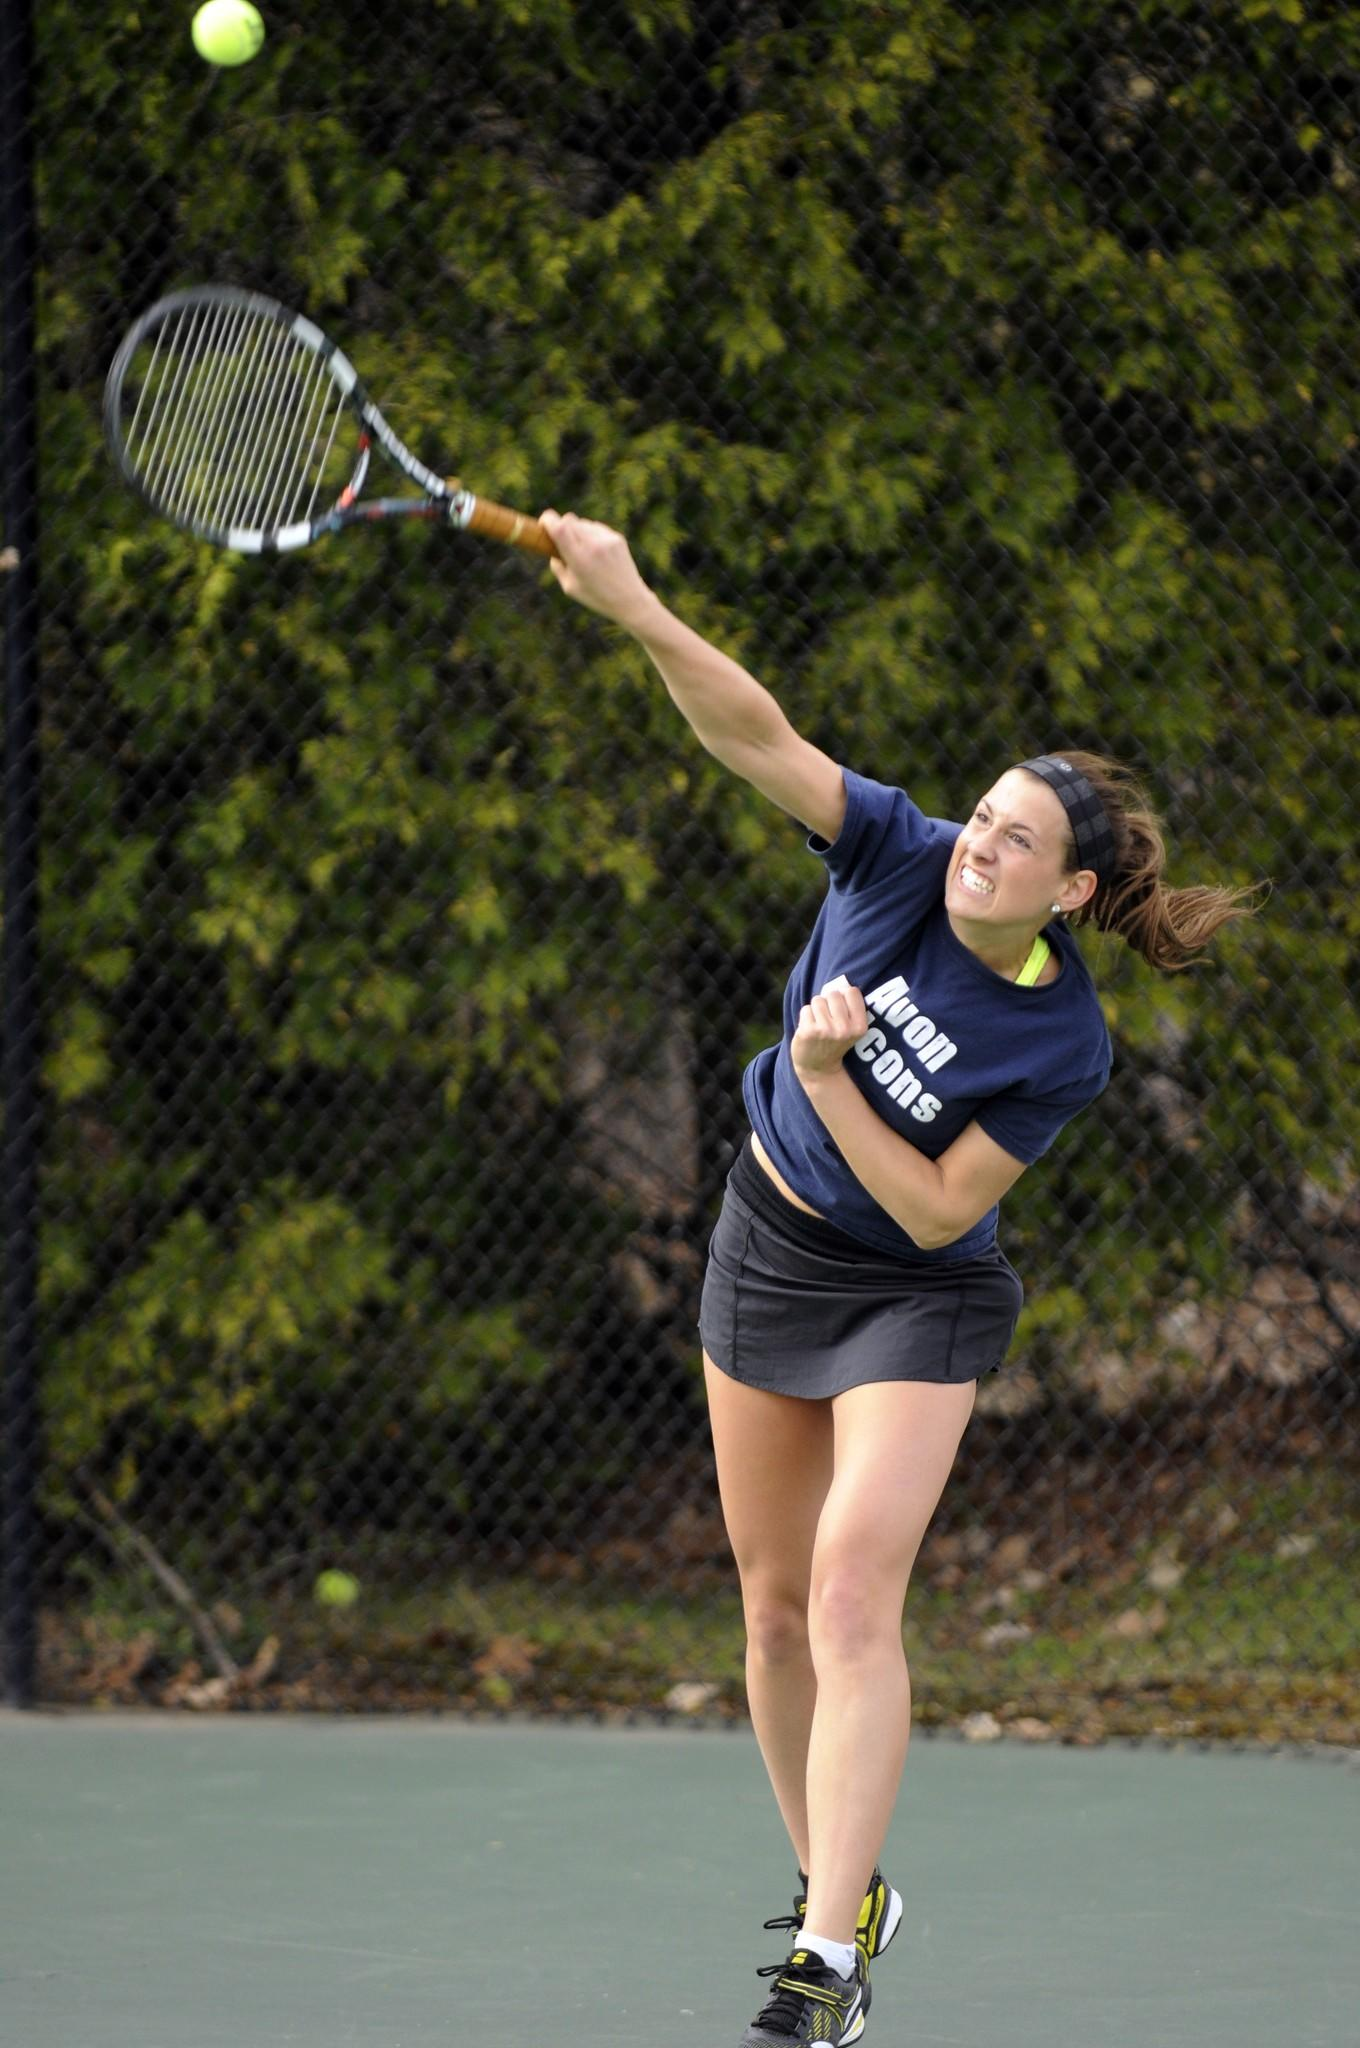 EAST GRANBY--5/2/14--Avon's Hannah Dehlem in a match between Avon and East Granby Friday May 2 at East Granby High School. (RICK HARTFORD|rhartford@courant.com) B583704137Z.1//hc-hs-tennis-feature-0503. ORG XMIT: B583704137Z.1/hc-hs-tennis-featu